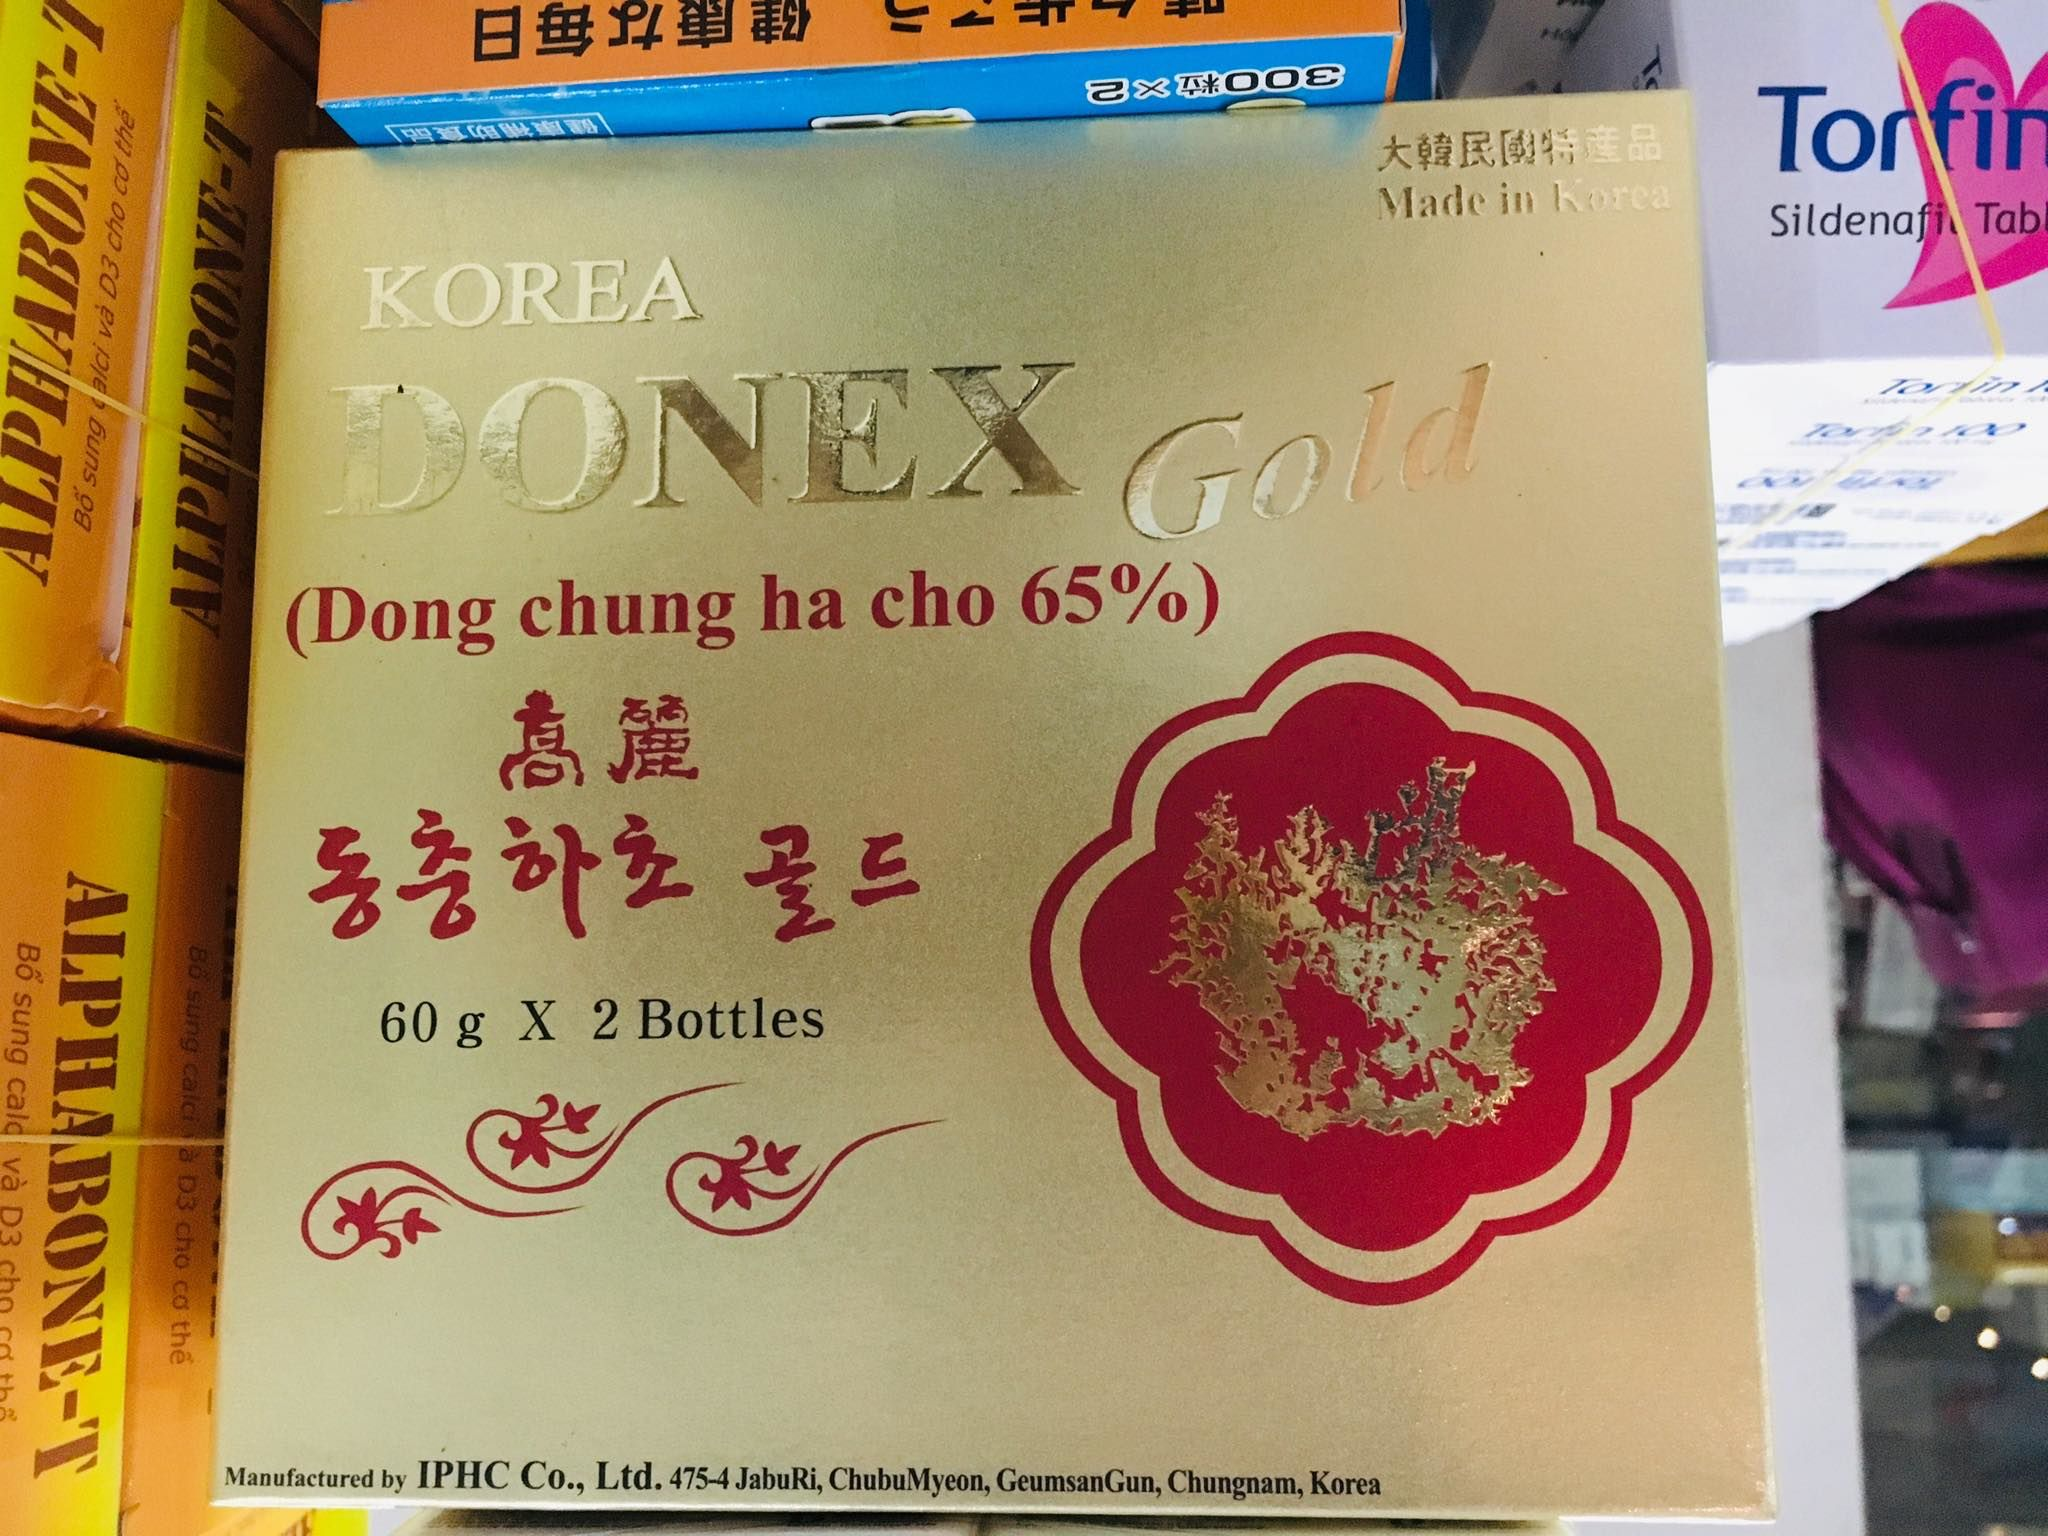 Korea Donex Gold